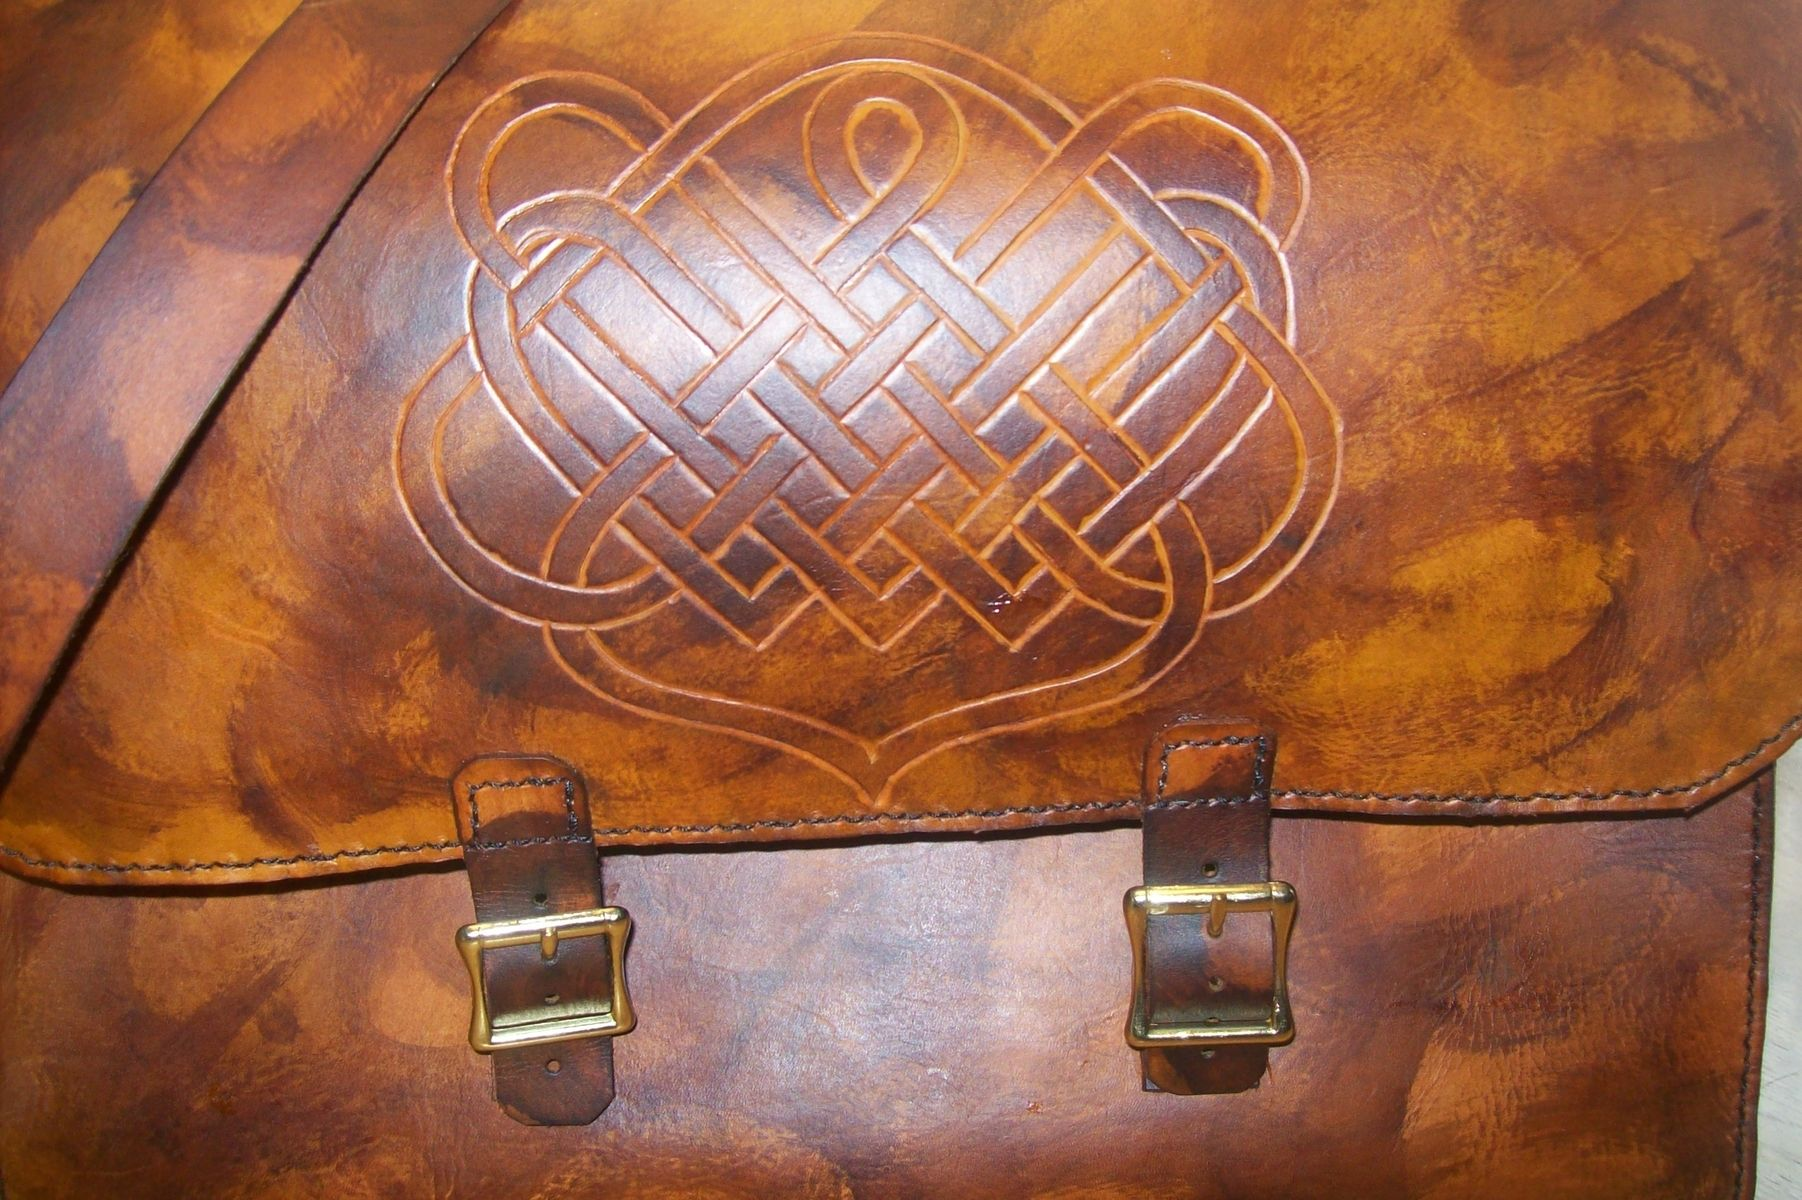 Custom Leather Laptop Bag With Celtic Design In Weathered Color By Kerry Phipps